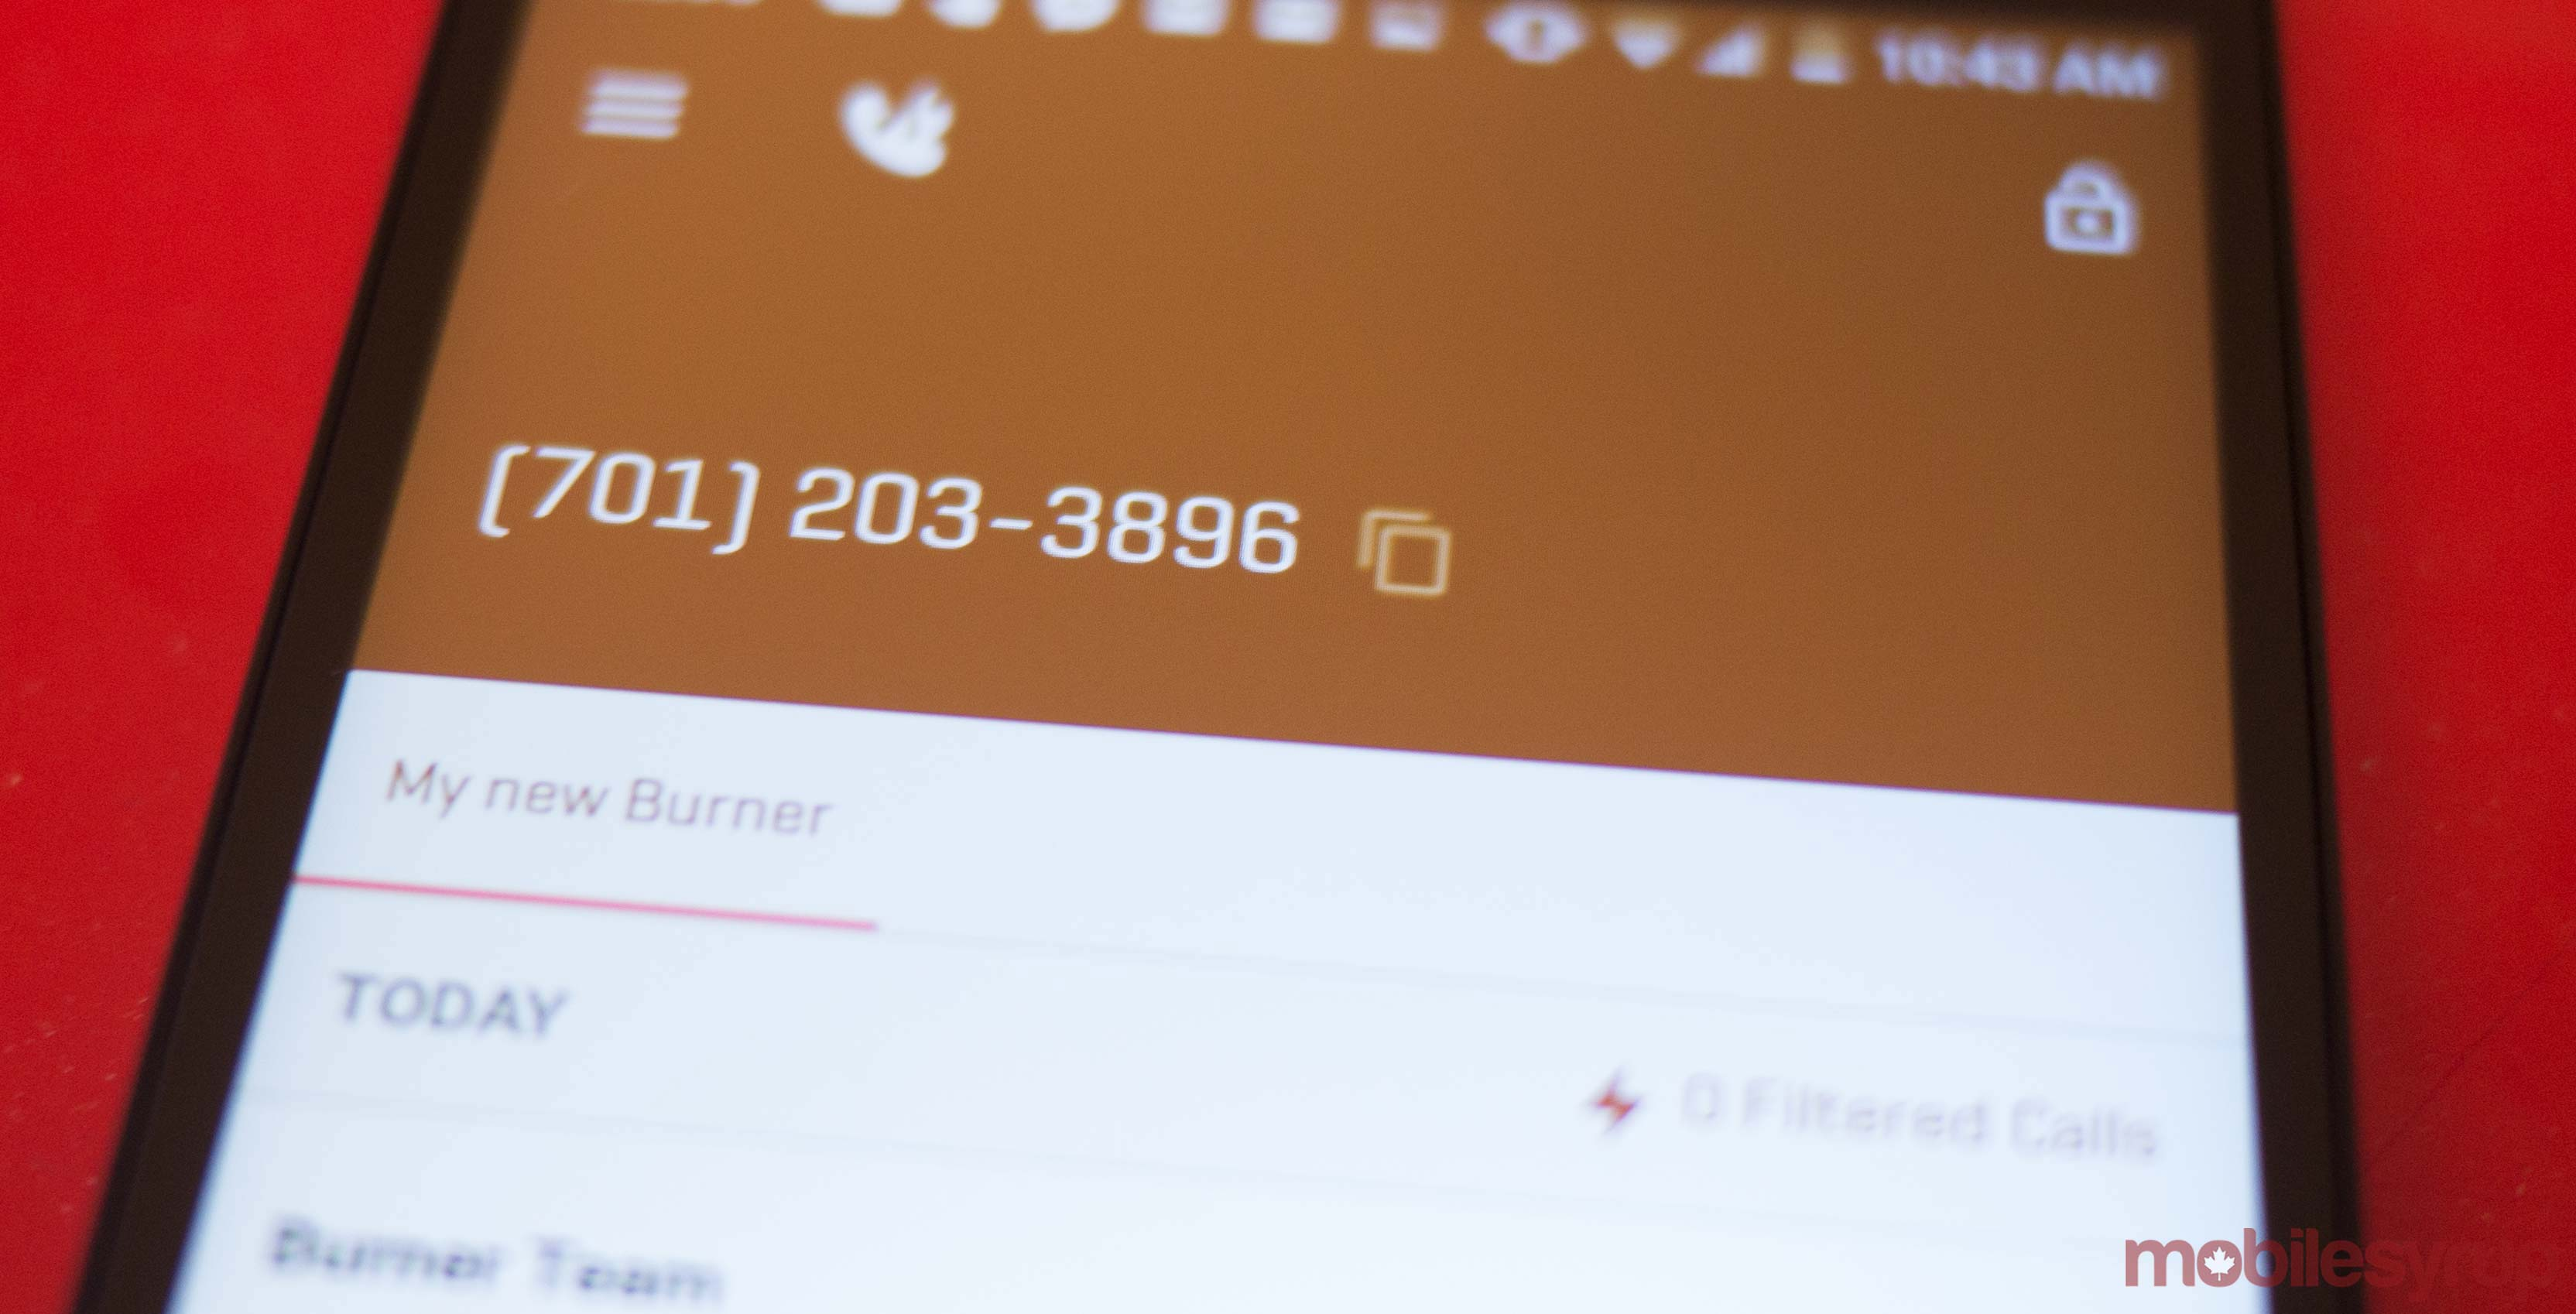 Protect your identity and get a second phone number with Burne